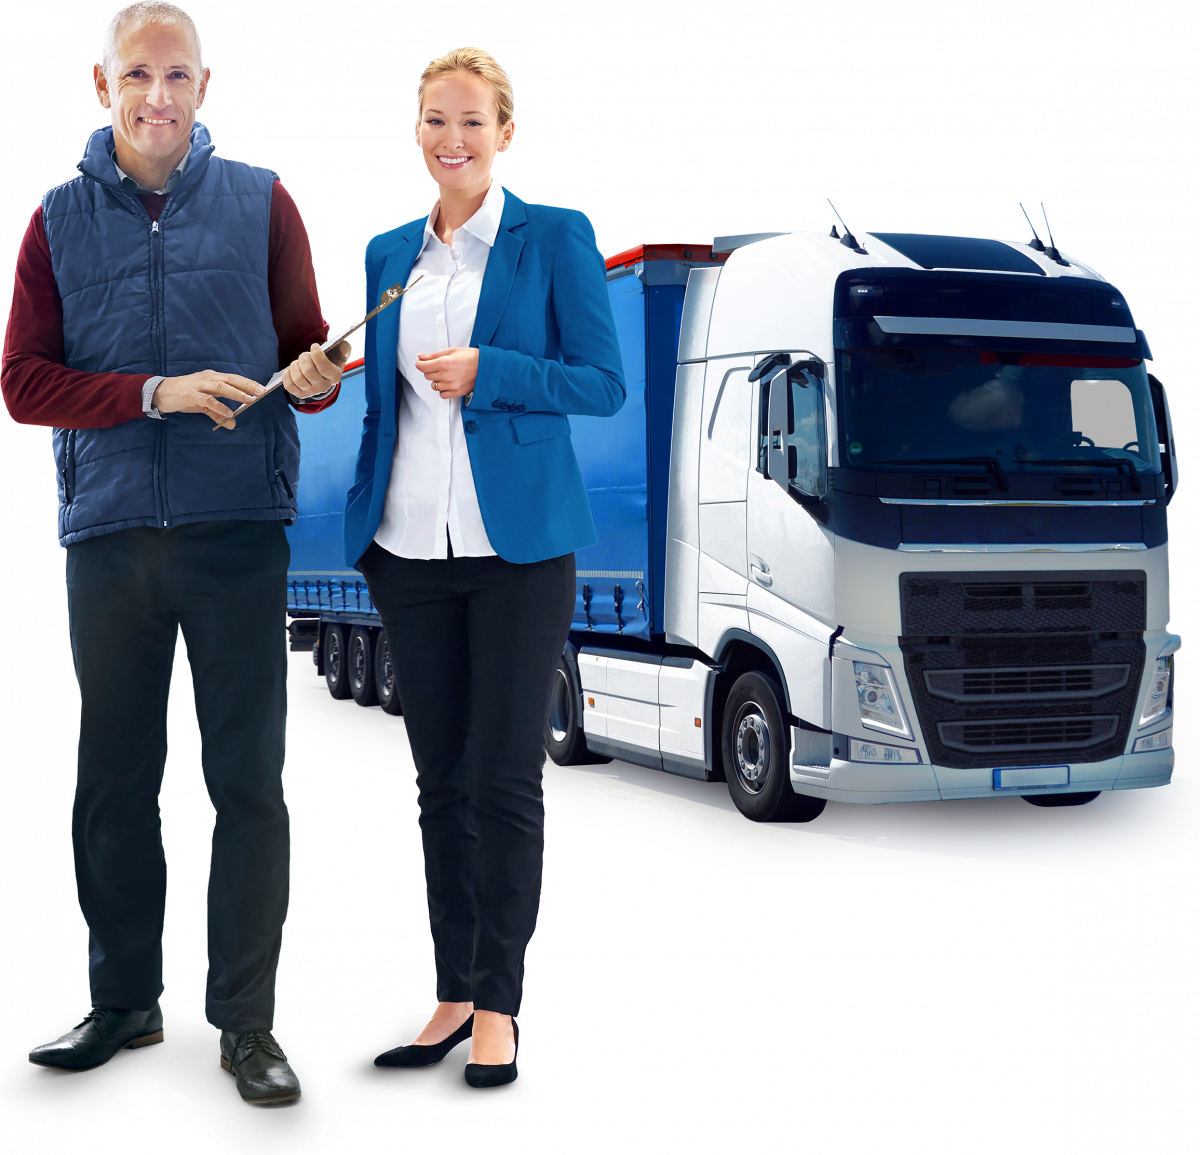 M3 Logisticware® - Software für Speditionen und Transportunternehmen